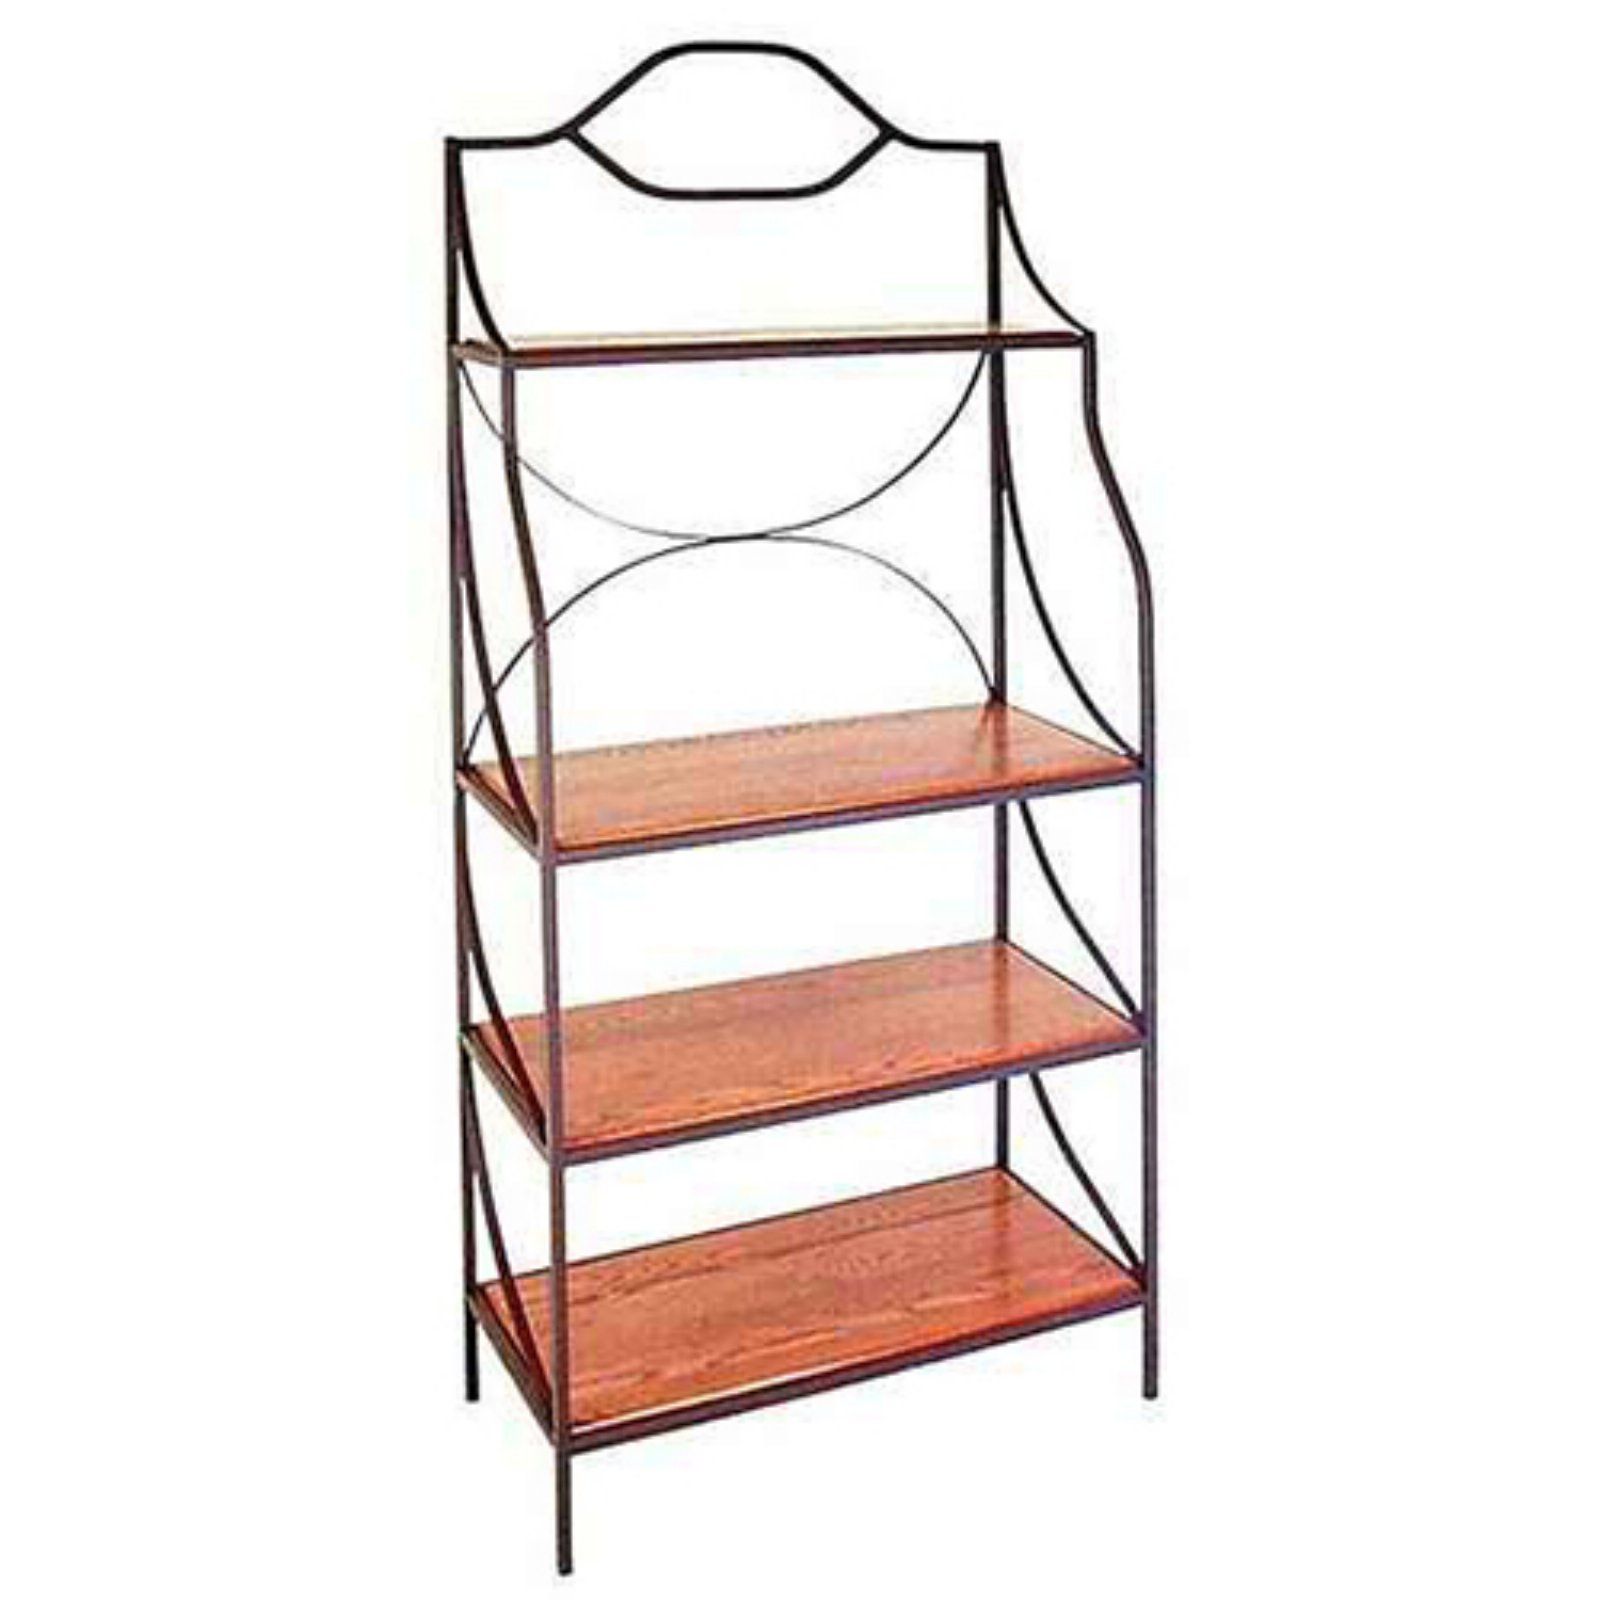 Grace Manufacturing Contemporary Backers Rack with Wooden Shelves